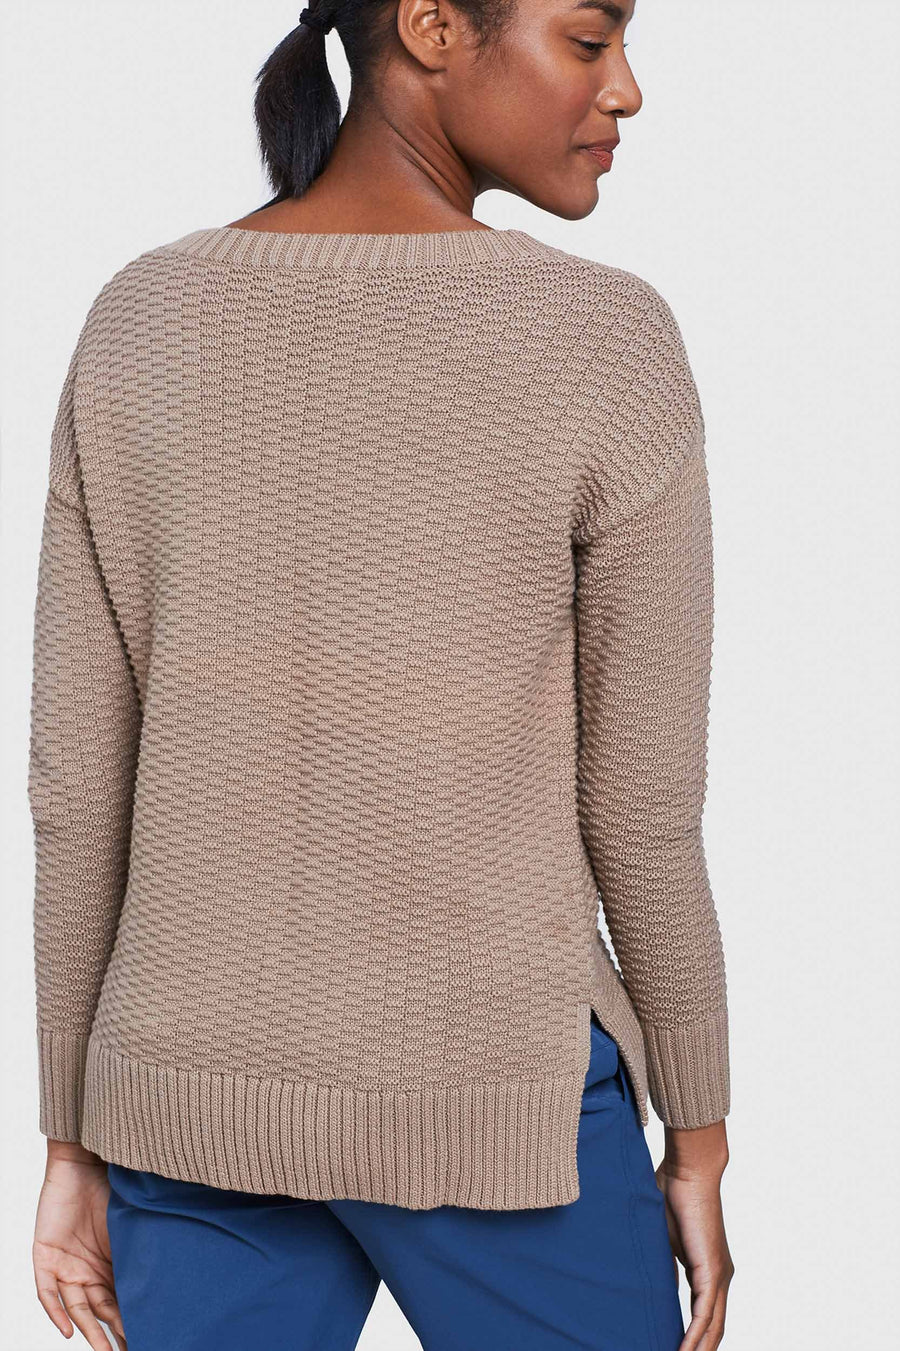 Women's United by Blue Himley Waffle Sweater – Go Far Shop